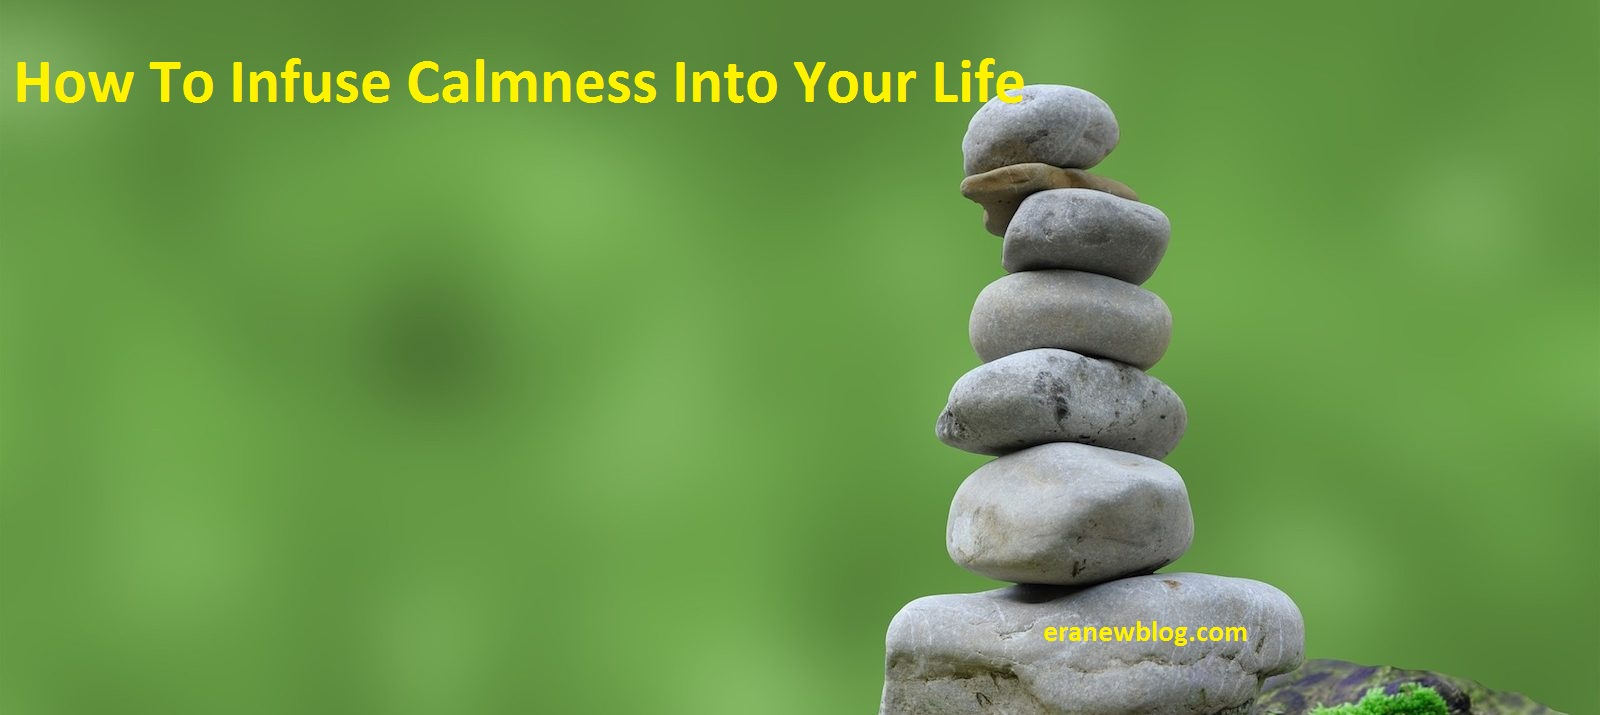 How To Infuse Calmness Into Your Life